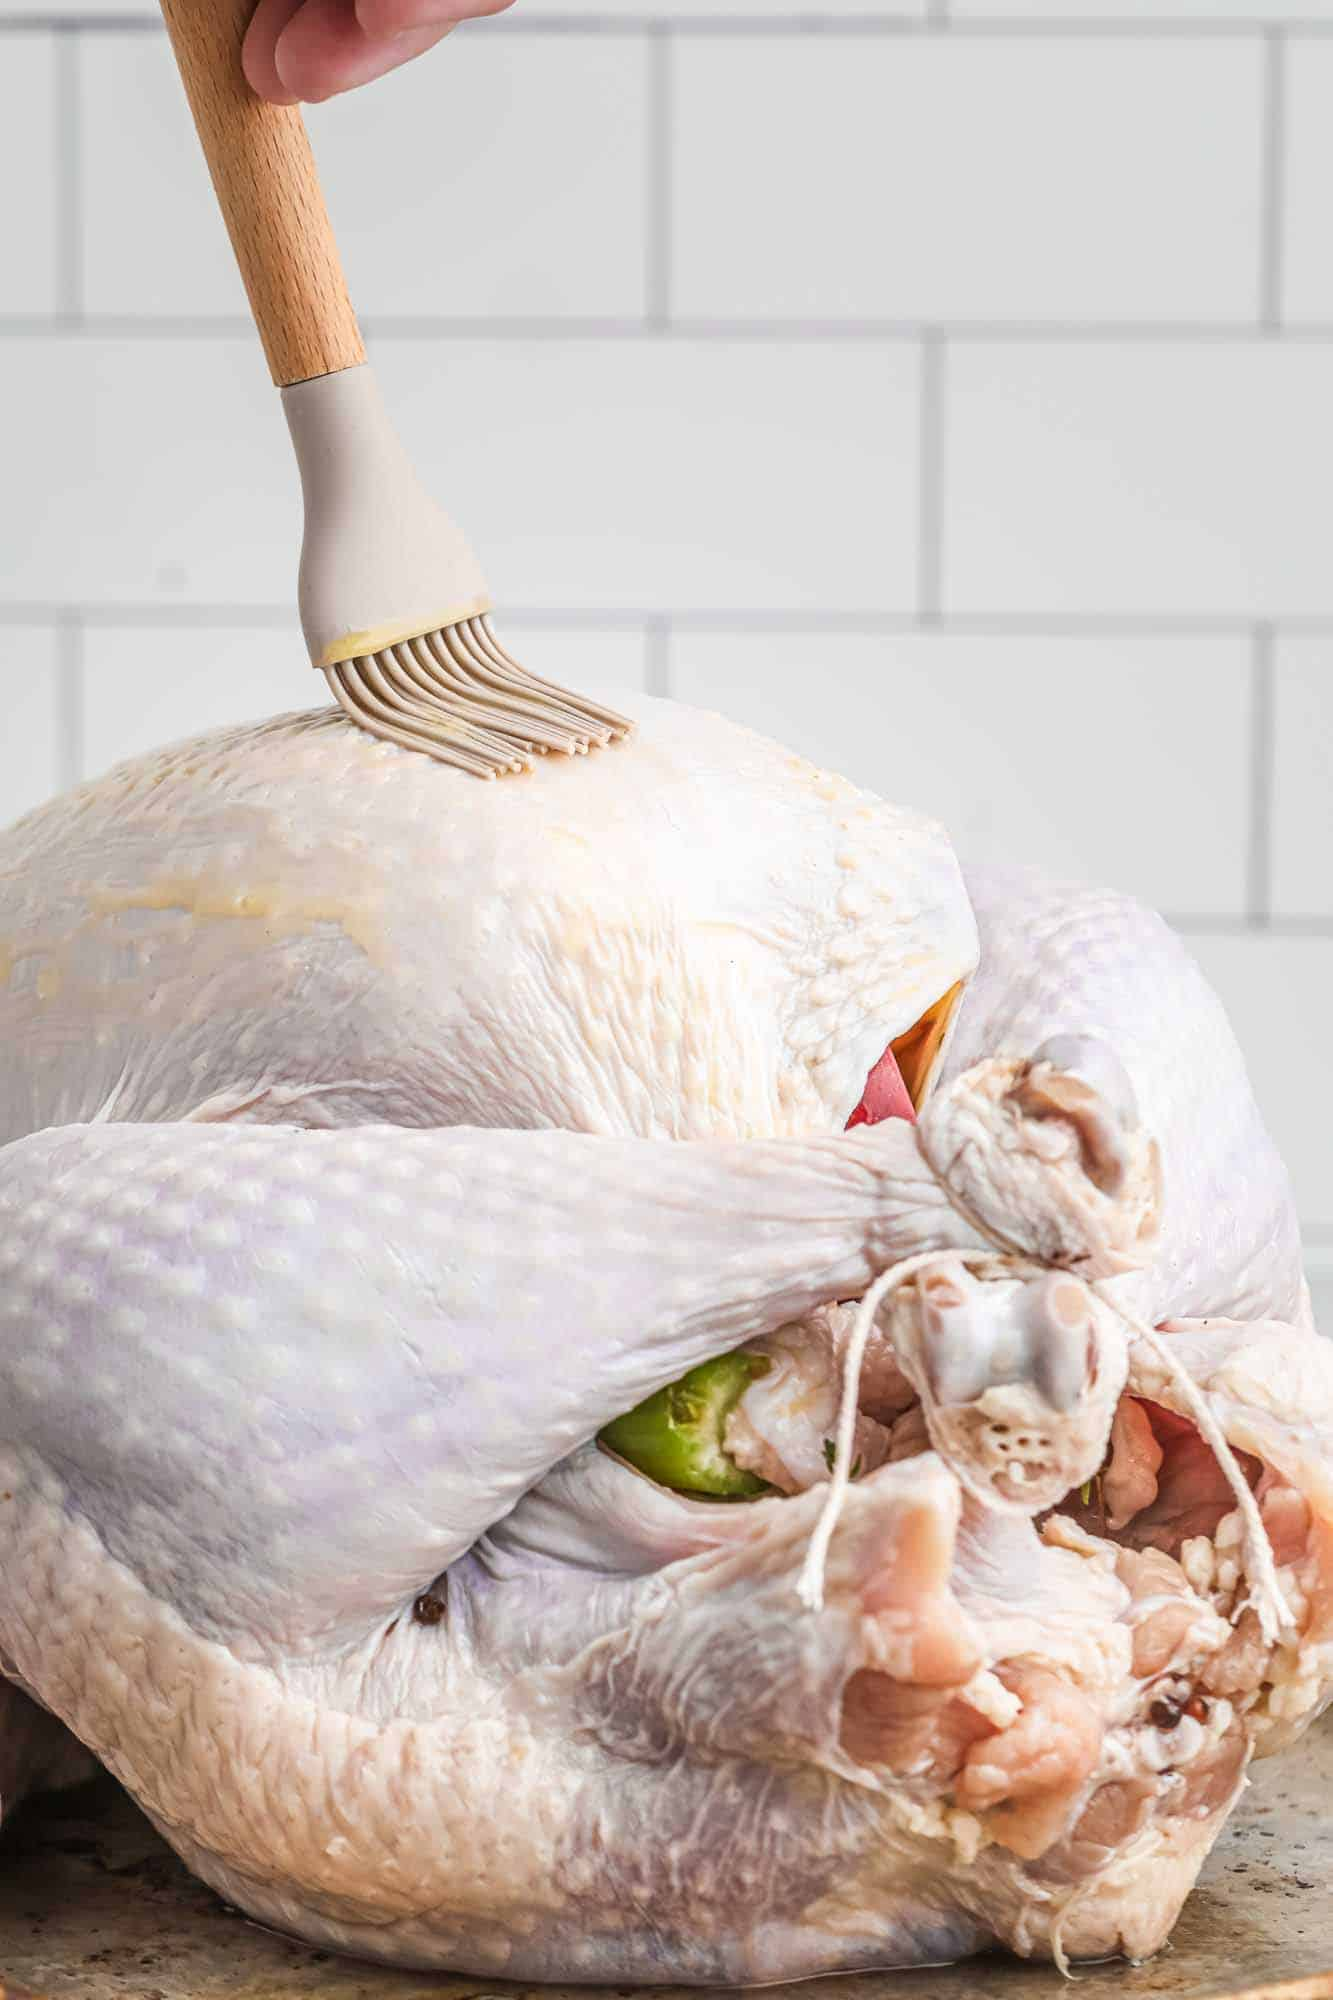 Brushing a raw turkey with melted butter